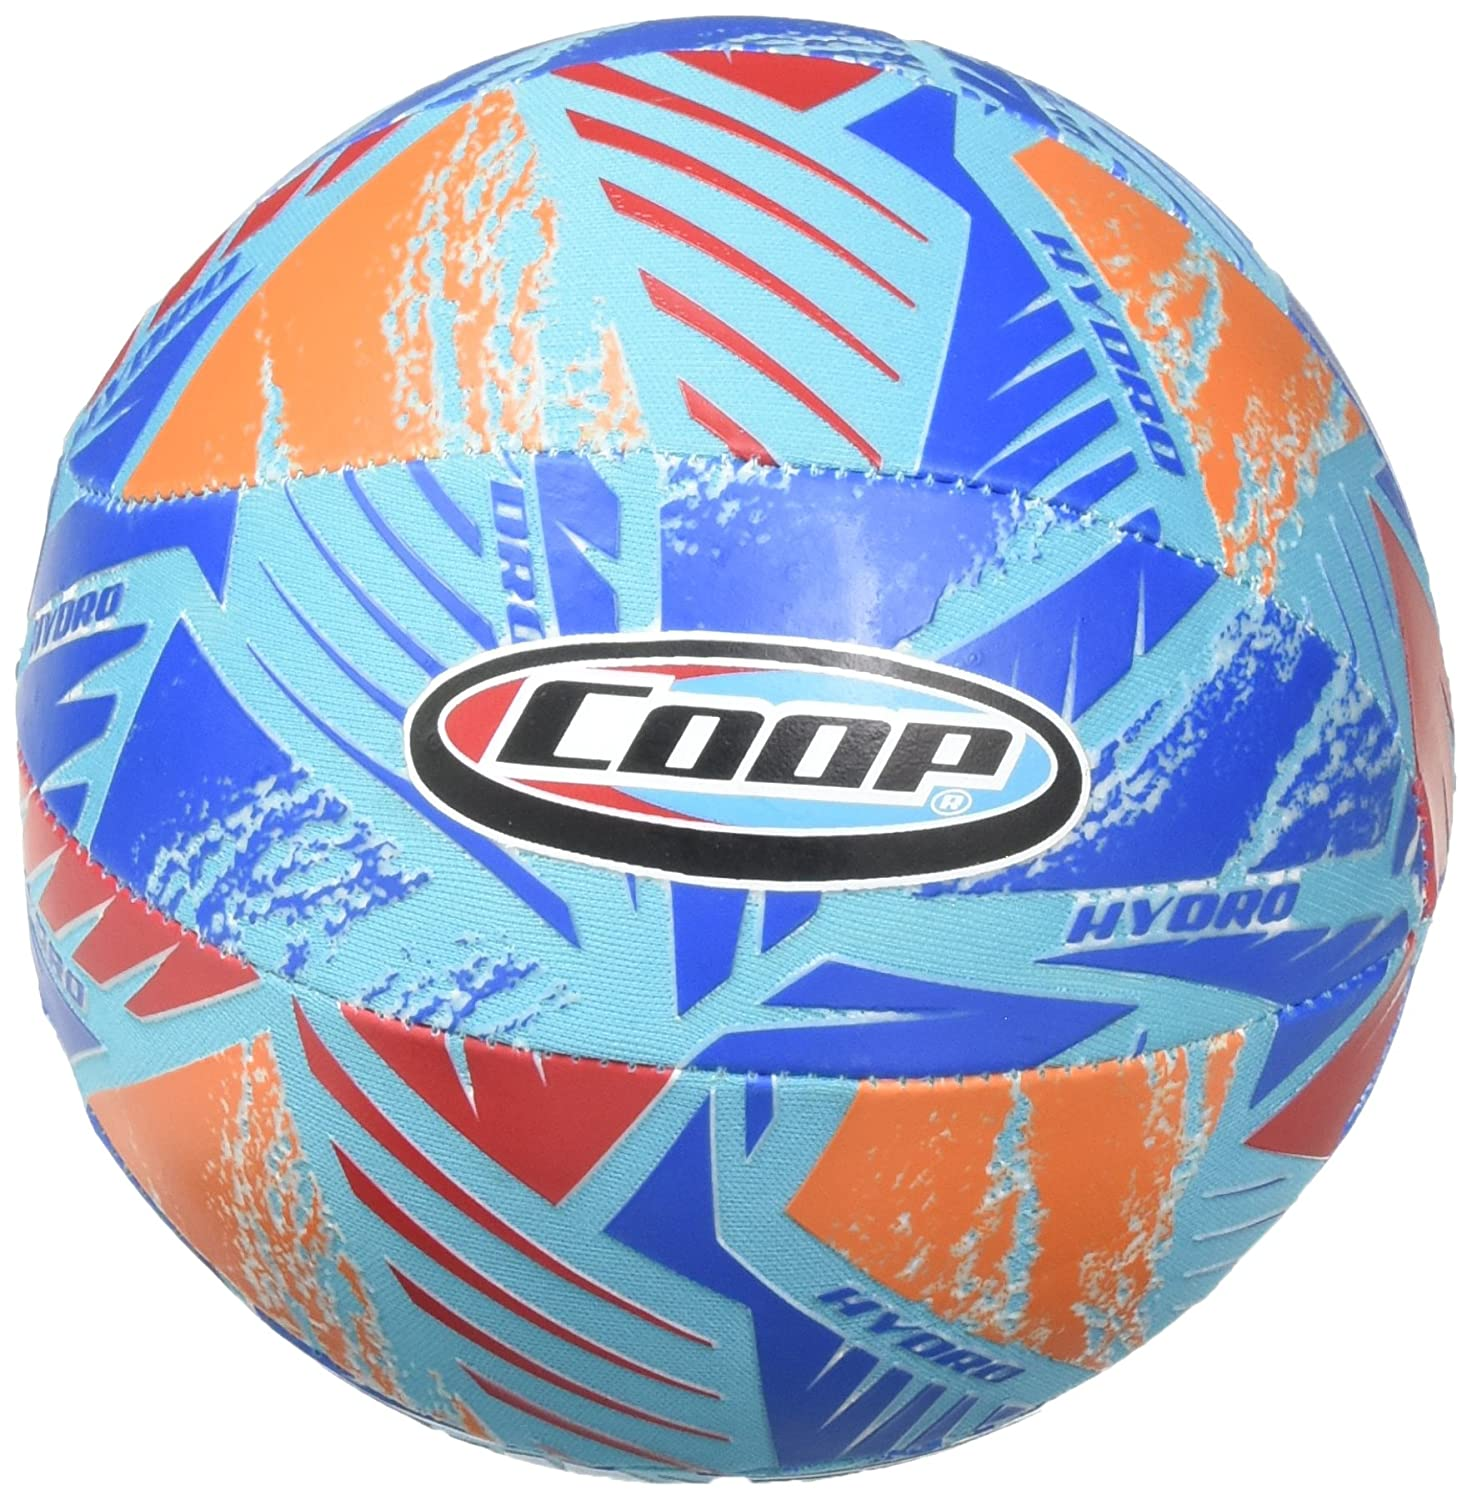 COOP Hydro Basketball (Colors May Vary) by COOP